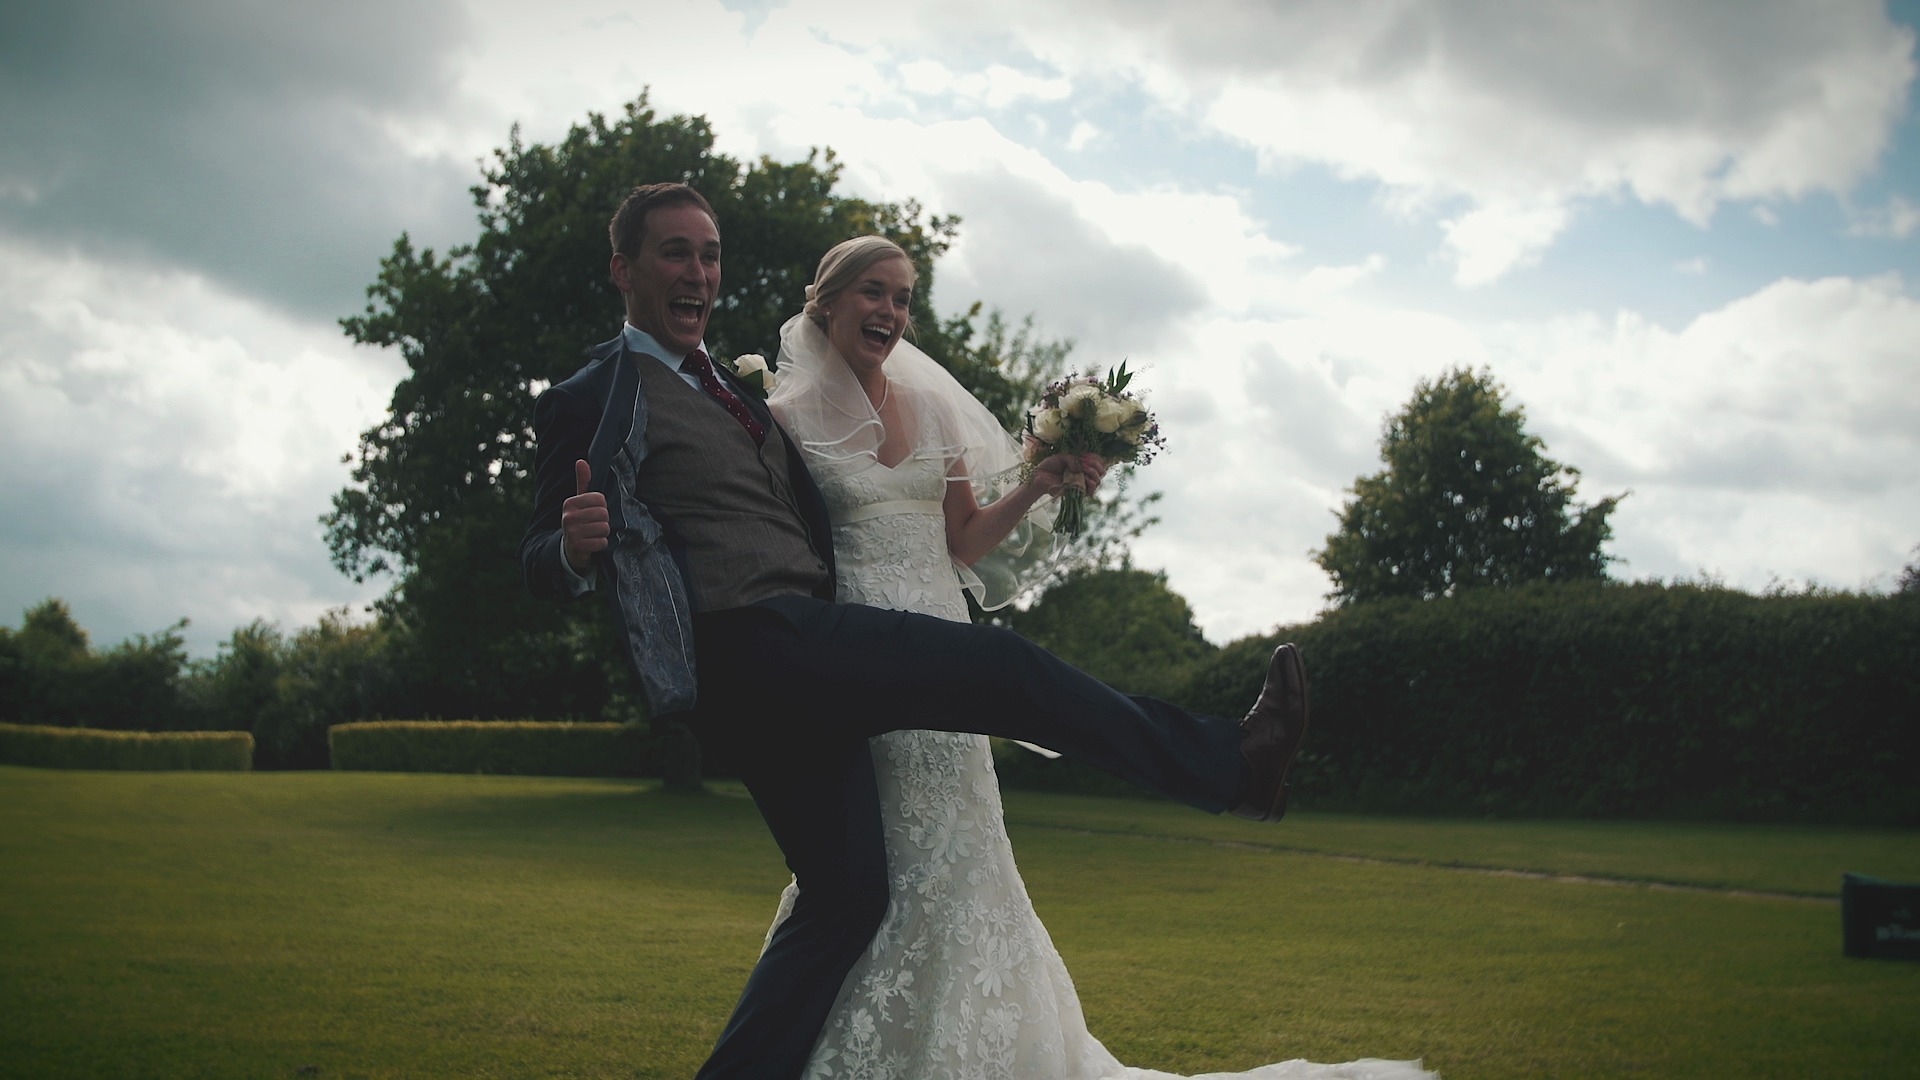 """Jess & Chris - """"Our wedding video captures the vibe of the day so perfectly, in fact a number of friends and family have said it's the best wedding video they have seen...there are so many special moments that you've caught. A video we will treasure for the years to come."""""""